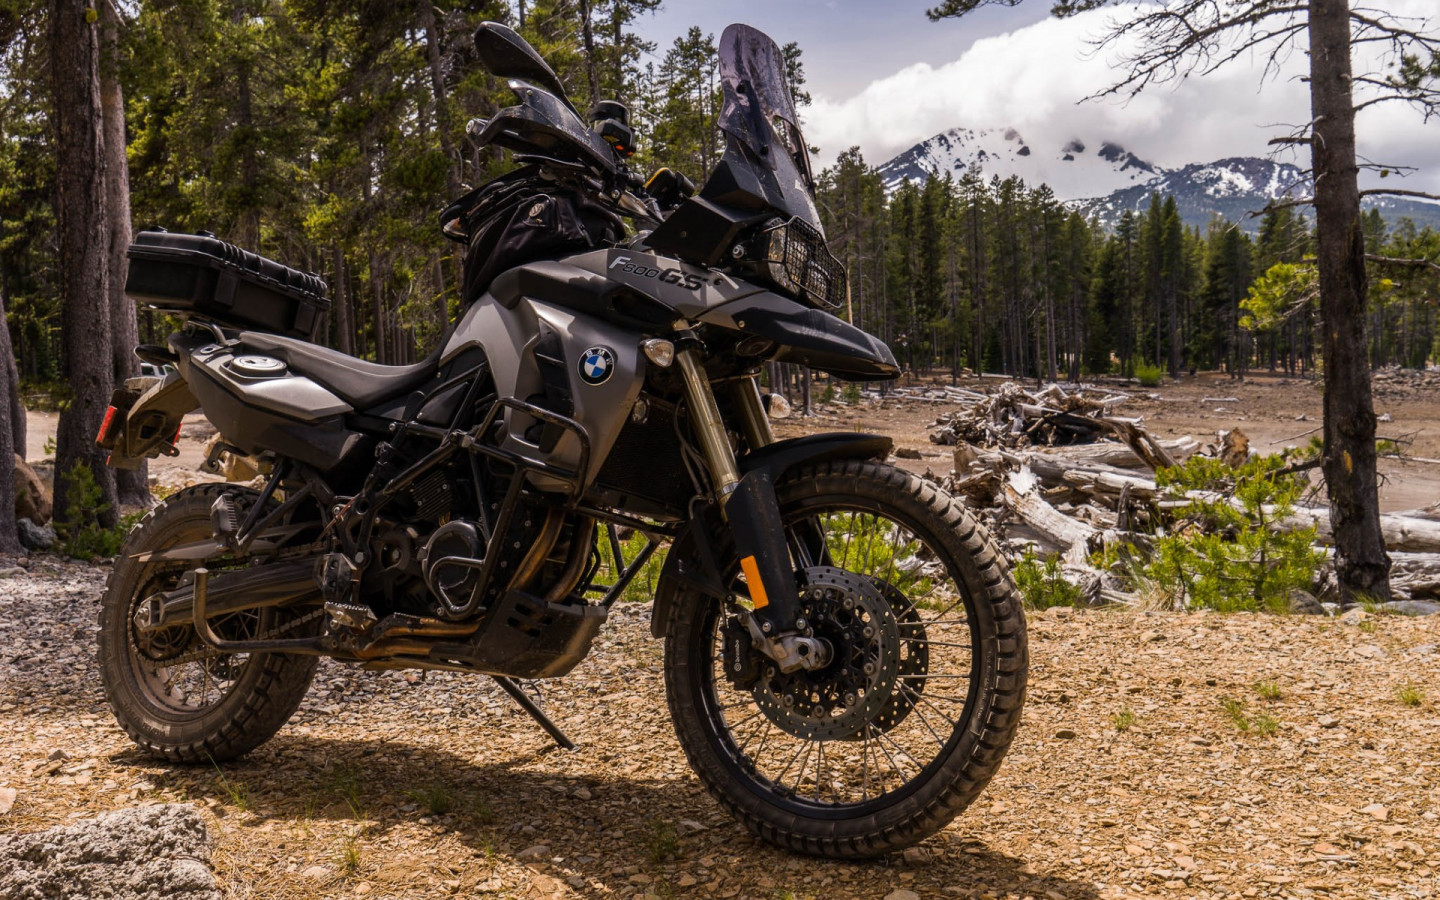 BMW F800GS motorcycle wallpaper 1440x900